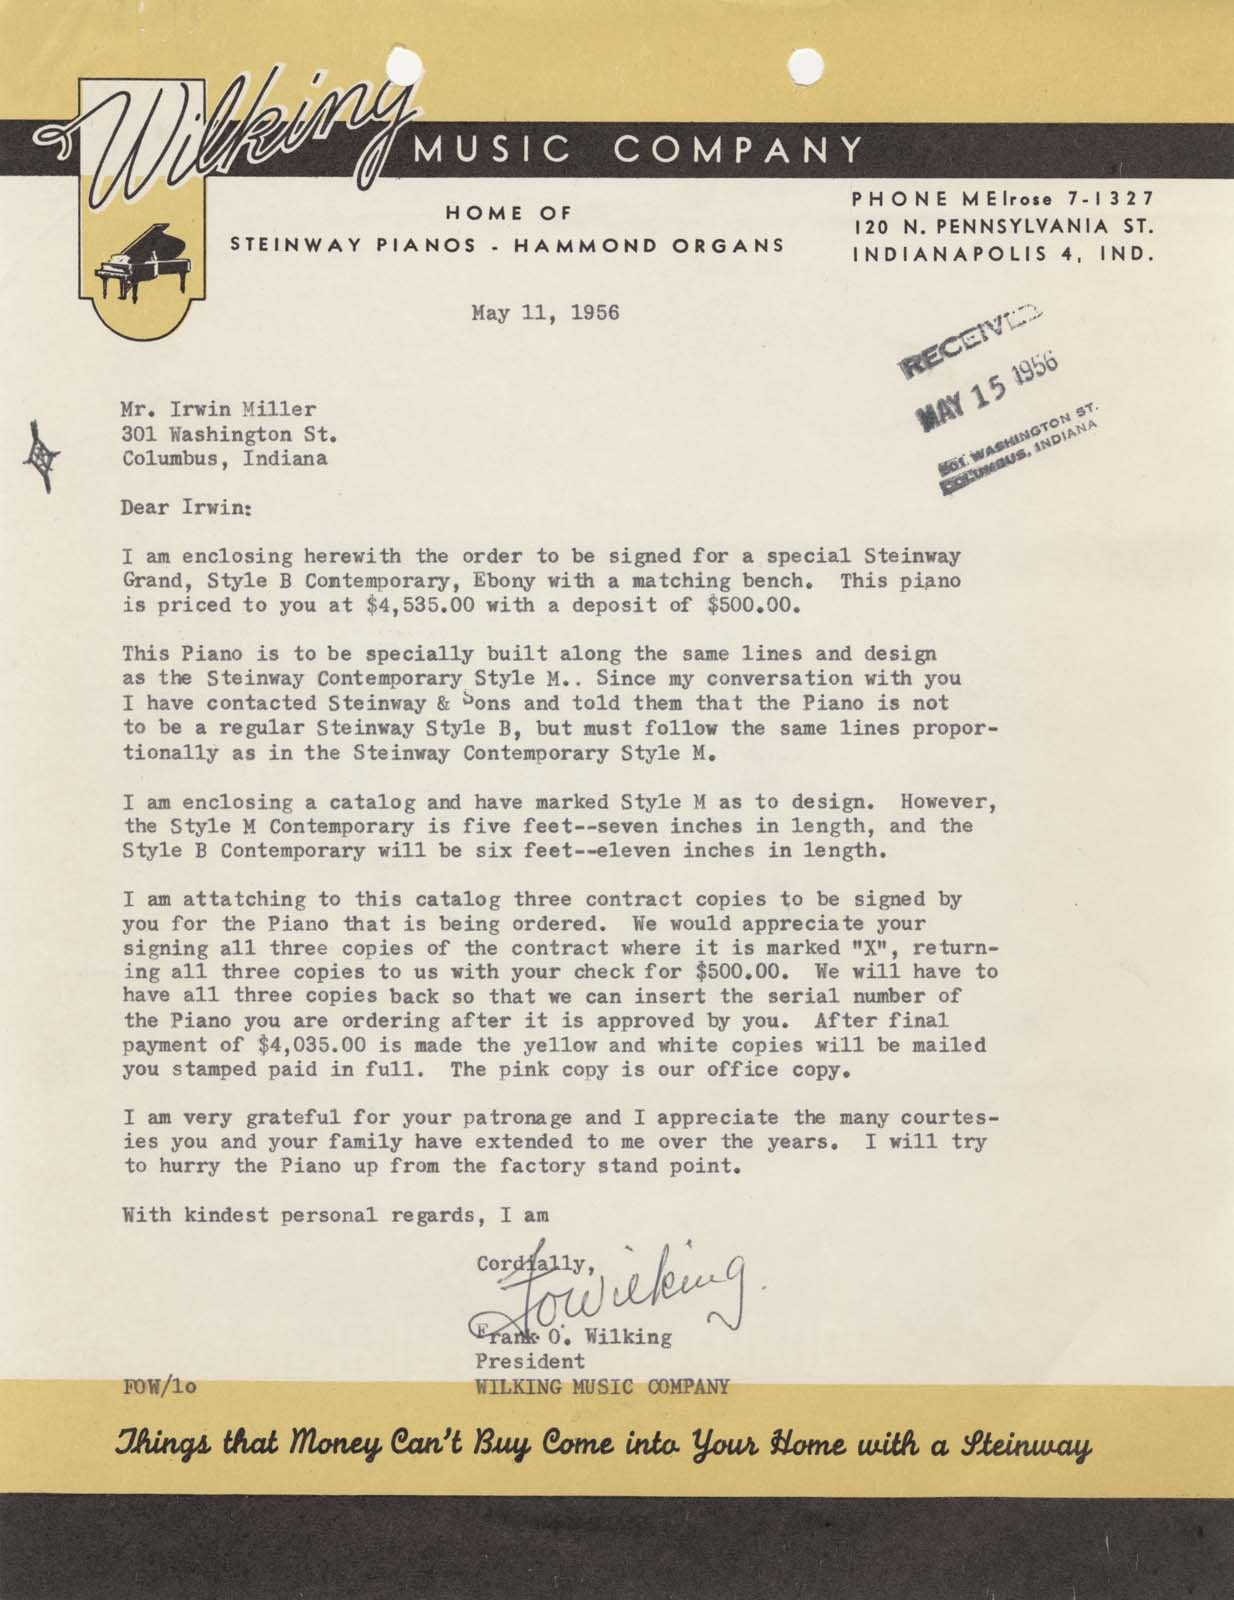 "As this letter makes clear, the Steinway piano was custom made for the Millers, and it fullfilled Mr. Miller's wish ""to have a bigger tone piano than a fellow feels he can have."" Although the Steinway Contemporary (designed by Walter Dorwin Teague) was manufactured as a Medium Grand piano, the Millers' piano is a Music Room Grand piano. Frank O. Wilking to J. Irwin Miller, 11 May 1956, 1/3, Miller House and Garden Collection, IMA Archives, Indianapolis Museum of Art, Indianapolis, Indiana. (MHG_Ia_B001_f003_031)"